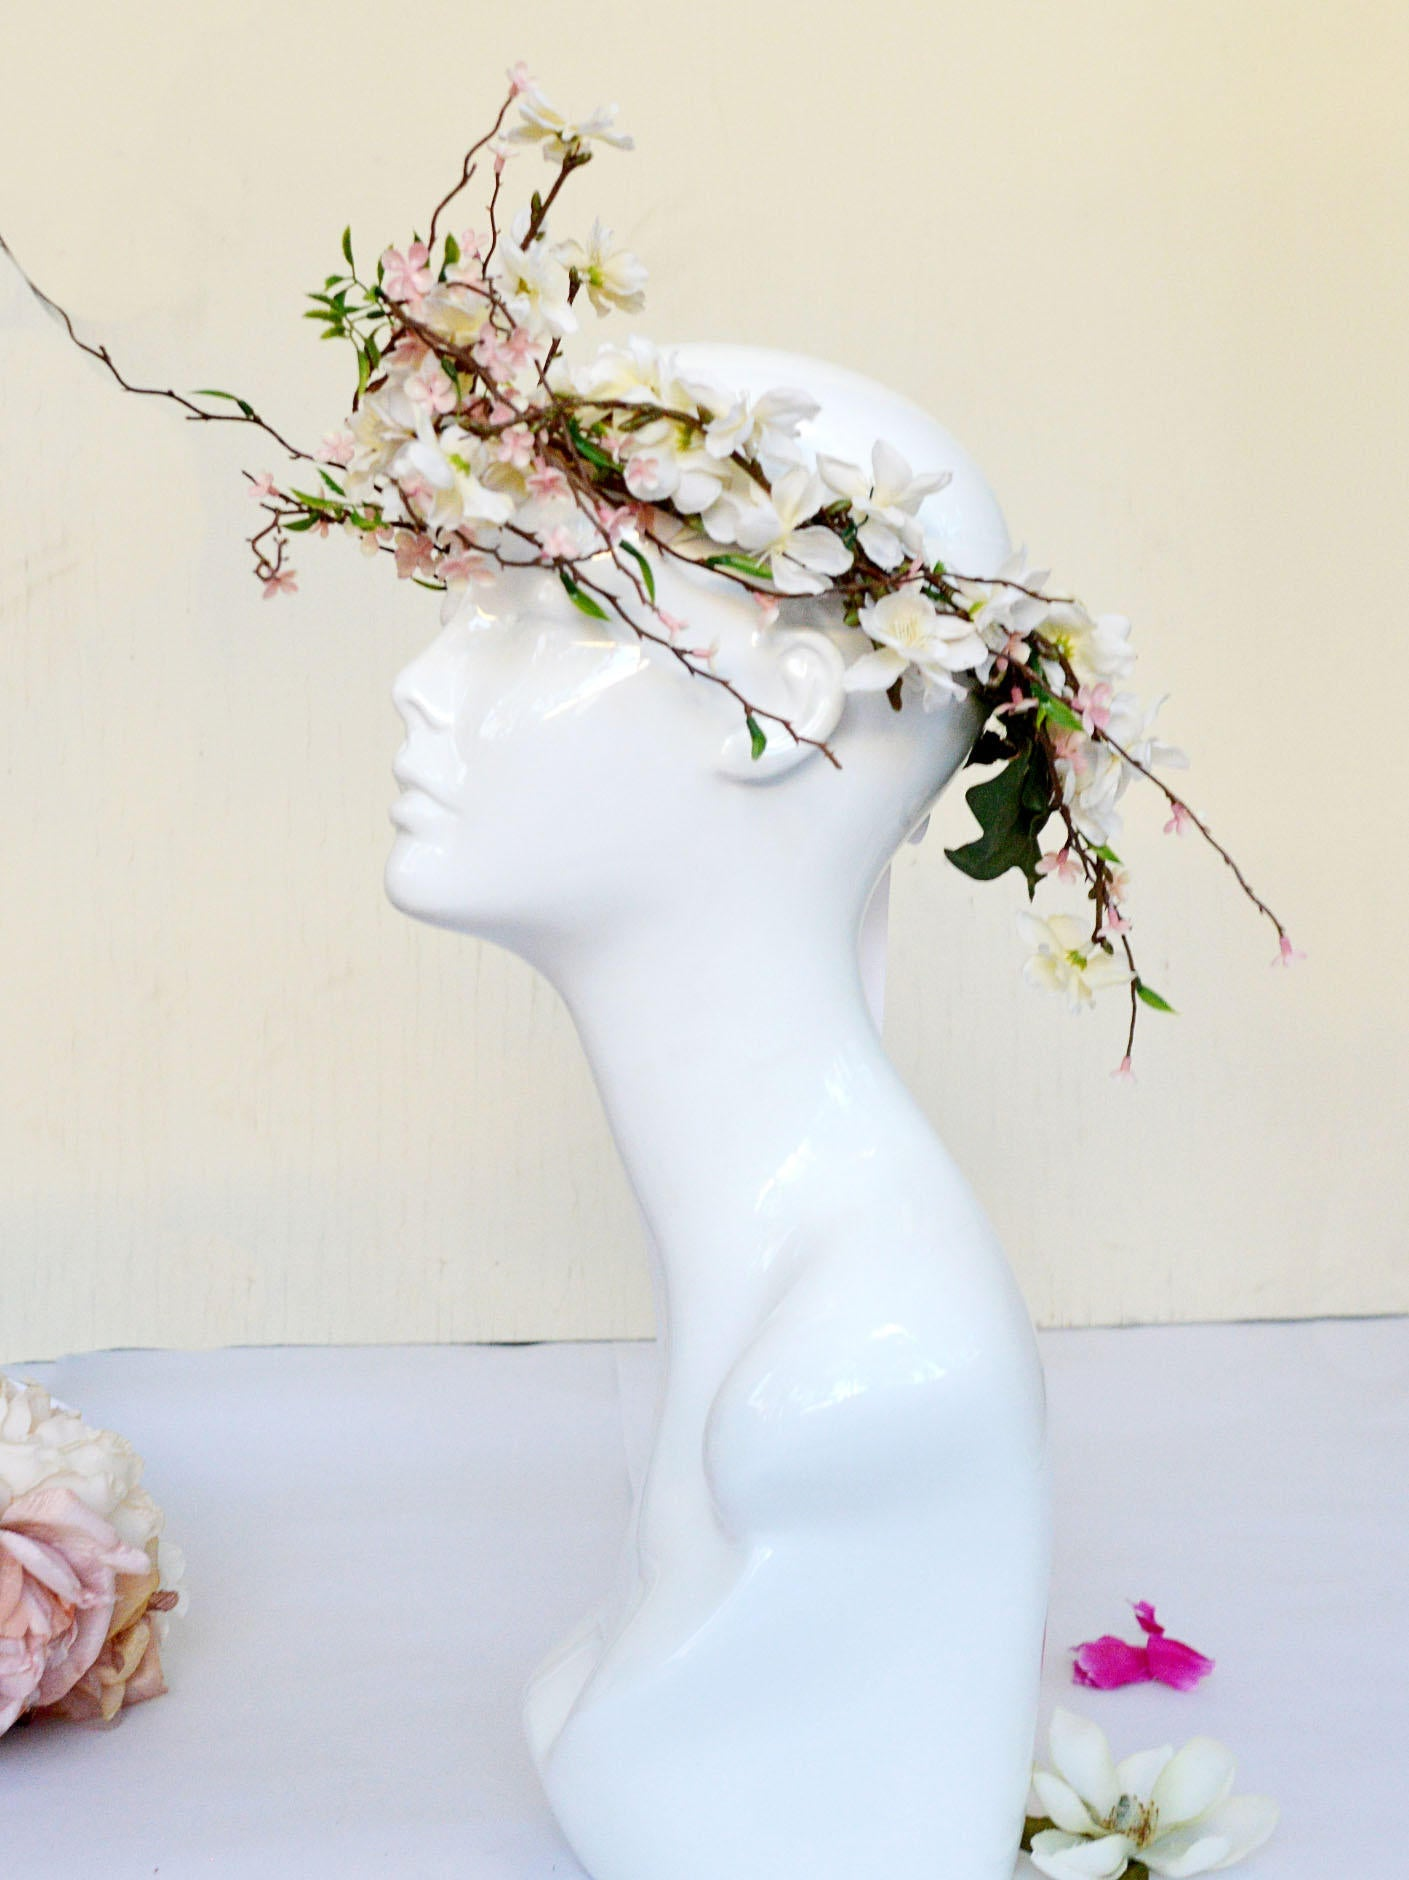 Floral wedding bridal crown of cherry blossoms, branches, flowers.